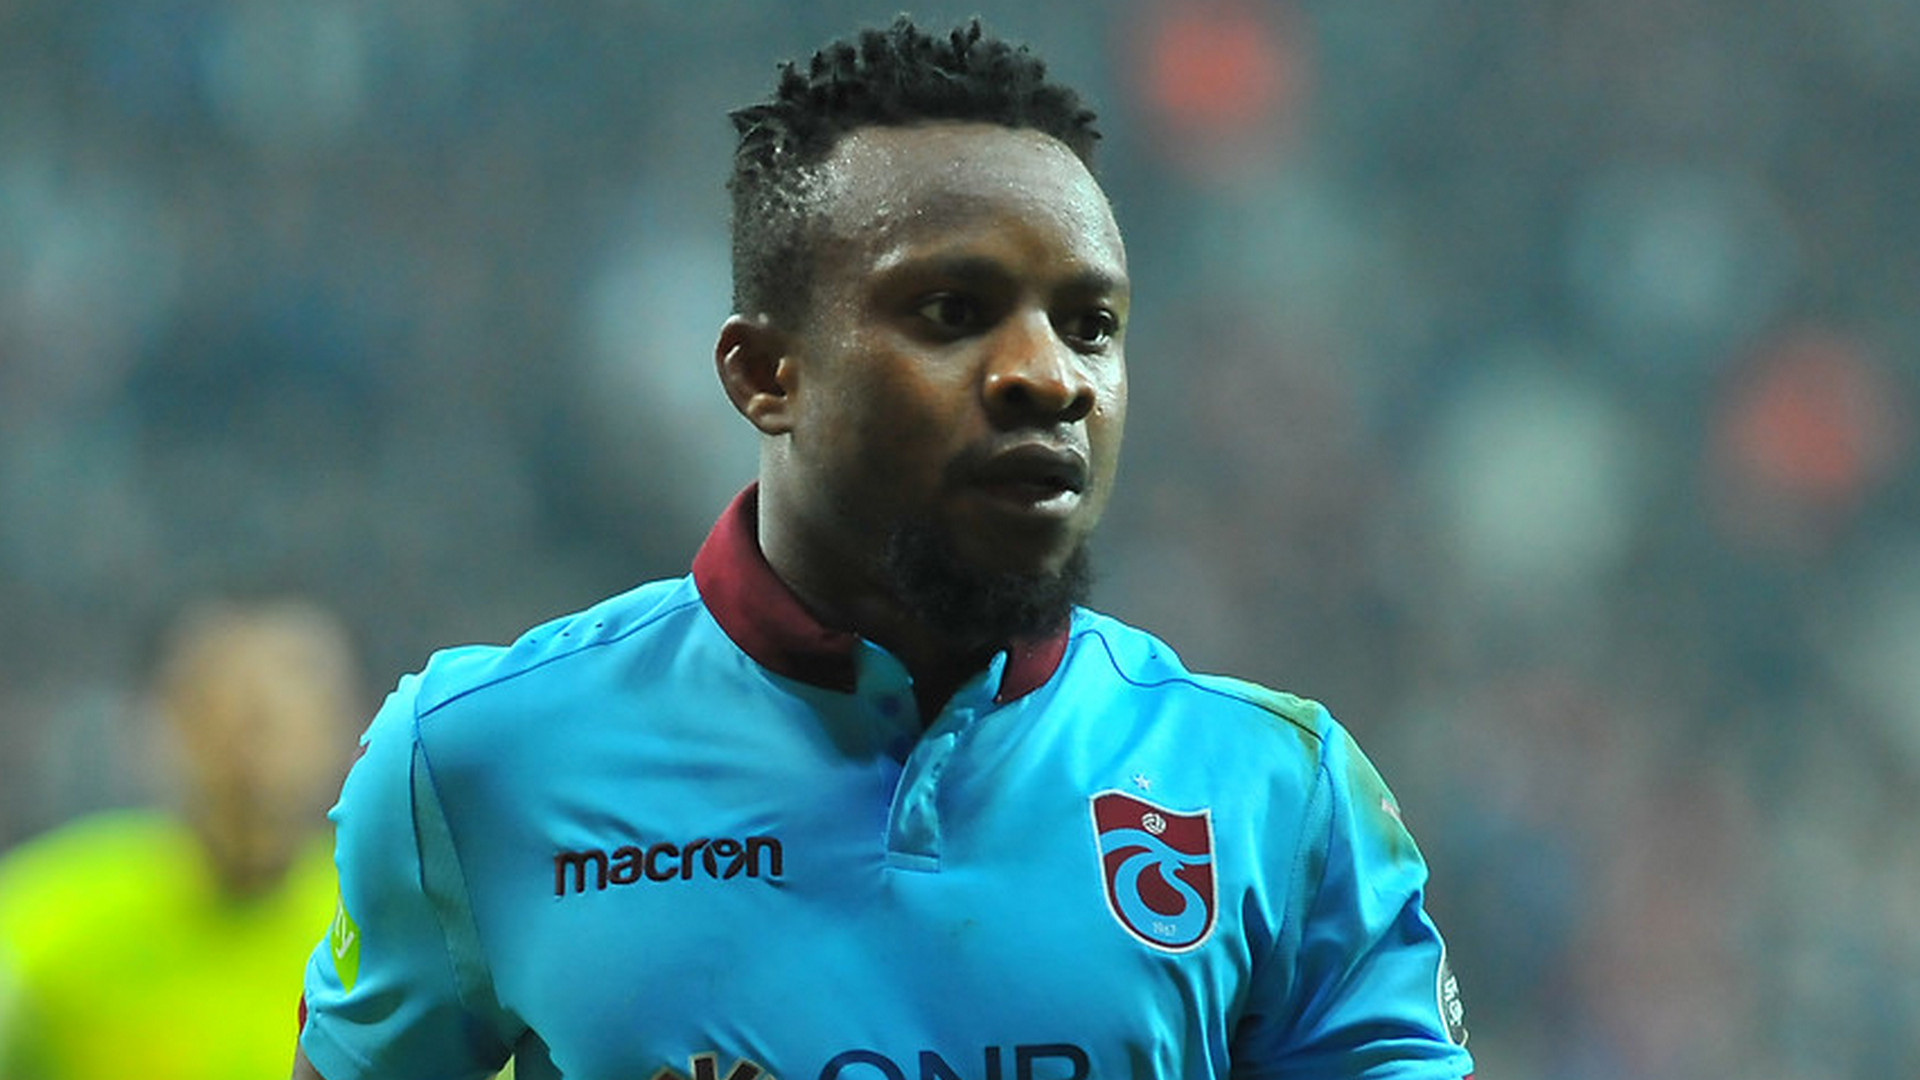 Onazi: Danish club SonderjyskE sign former Lazio midfielder